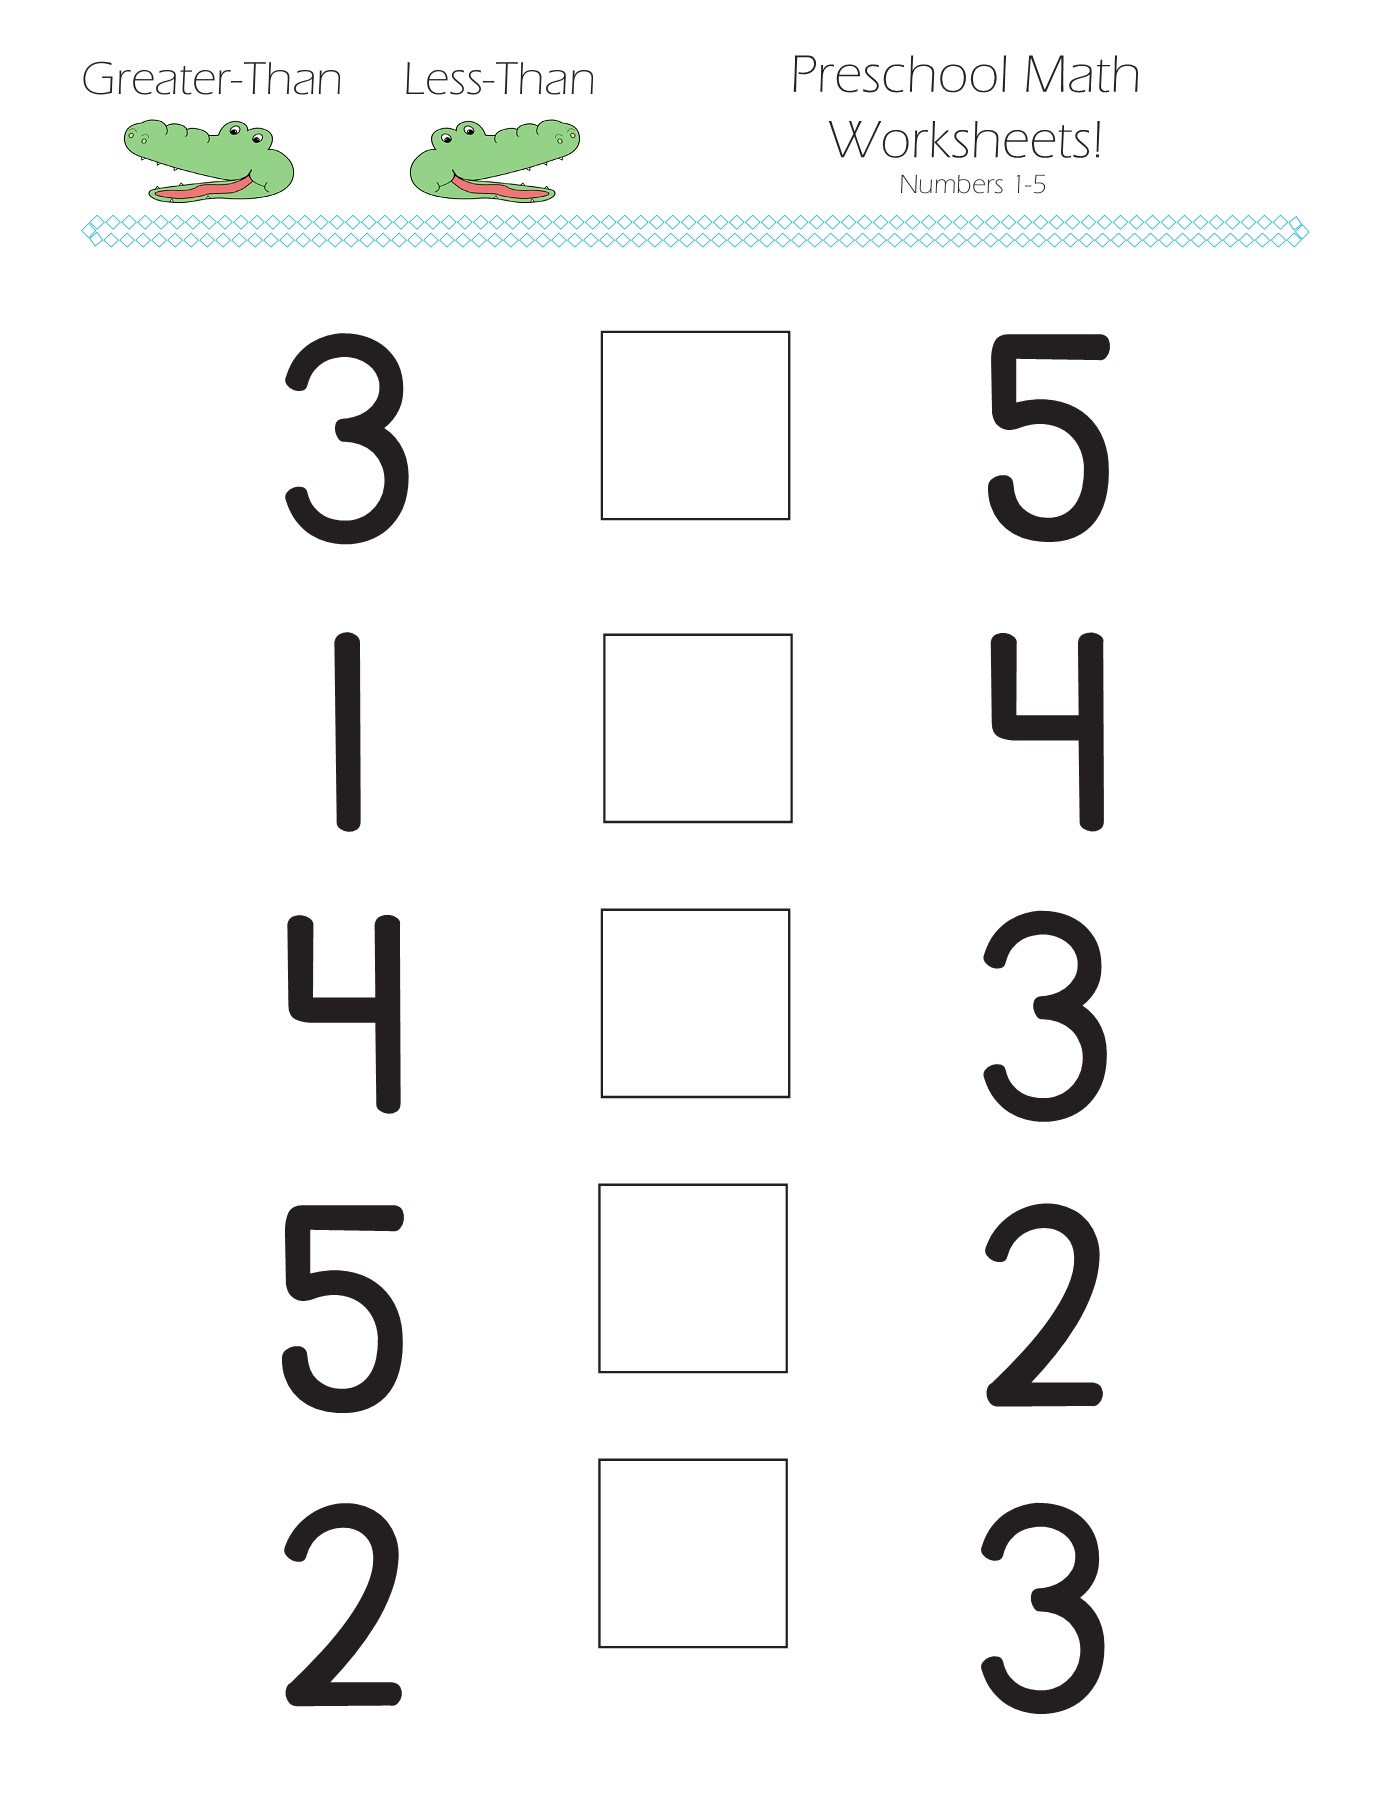 Free Printable Math Worksheets Greater Than Less Than